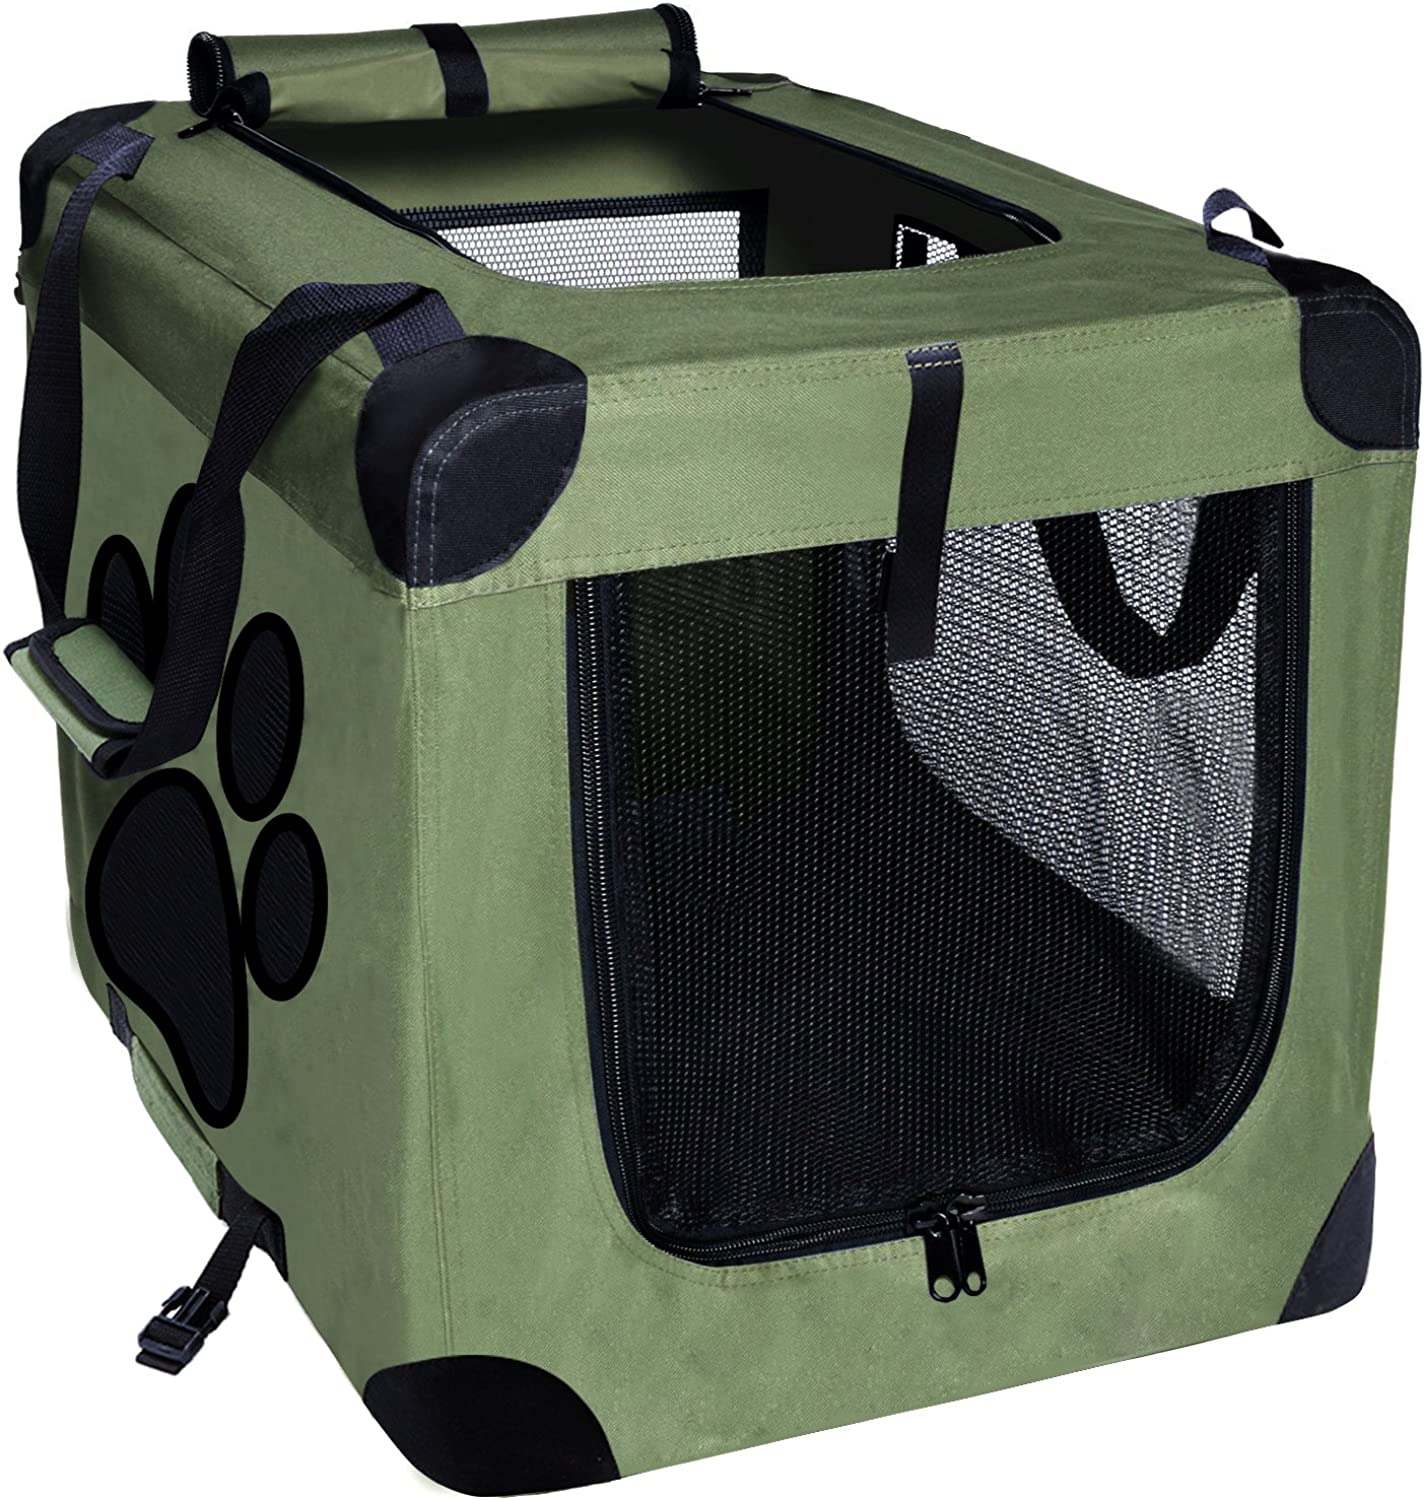 EXPAWLORER Dog Crate Collapsible Foldable Indoor Outdoor Pet Home, Deluxe Pet Carrier, Green